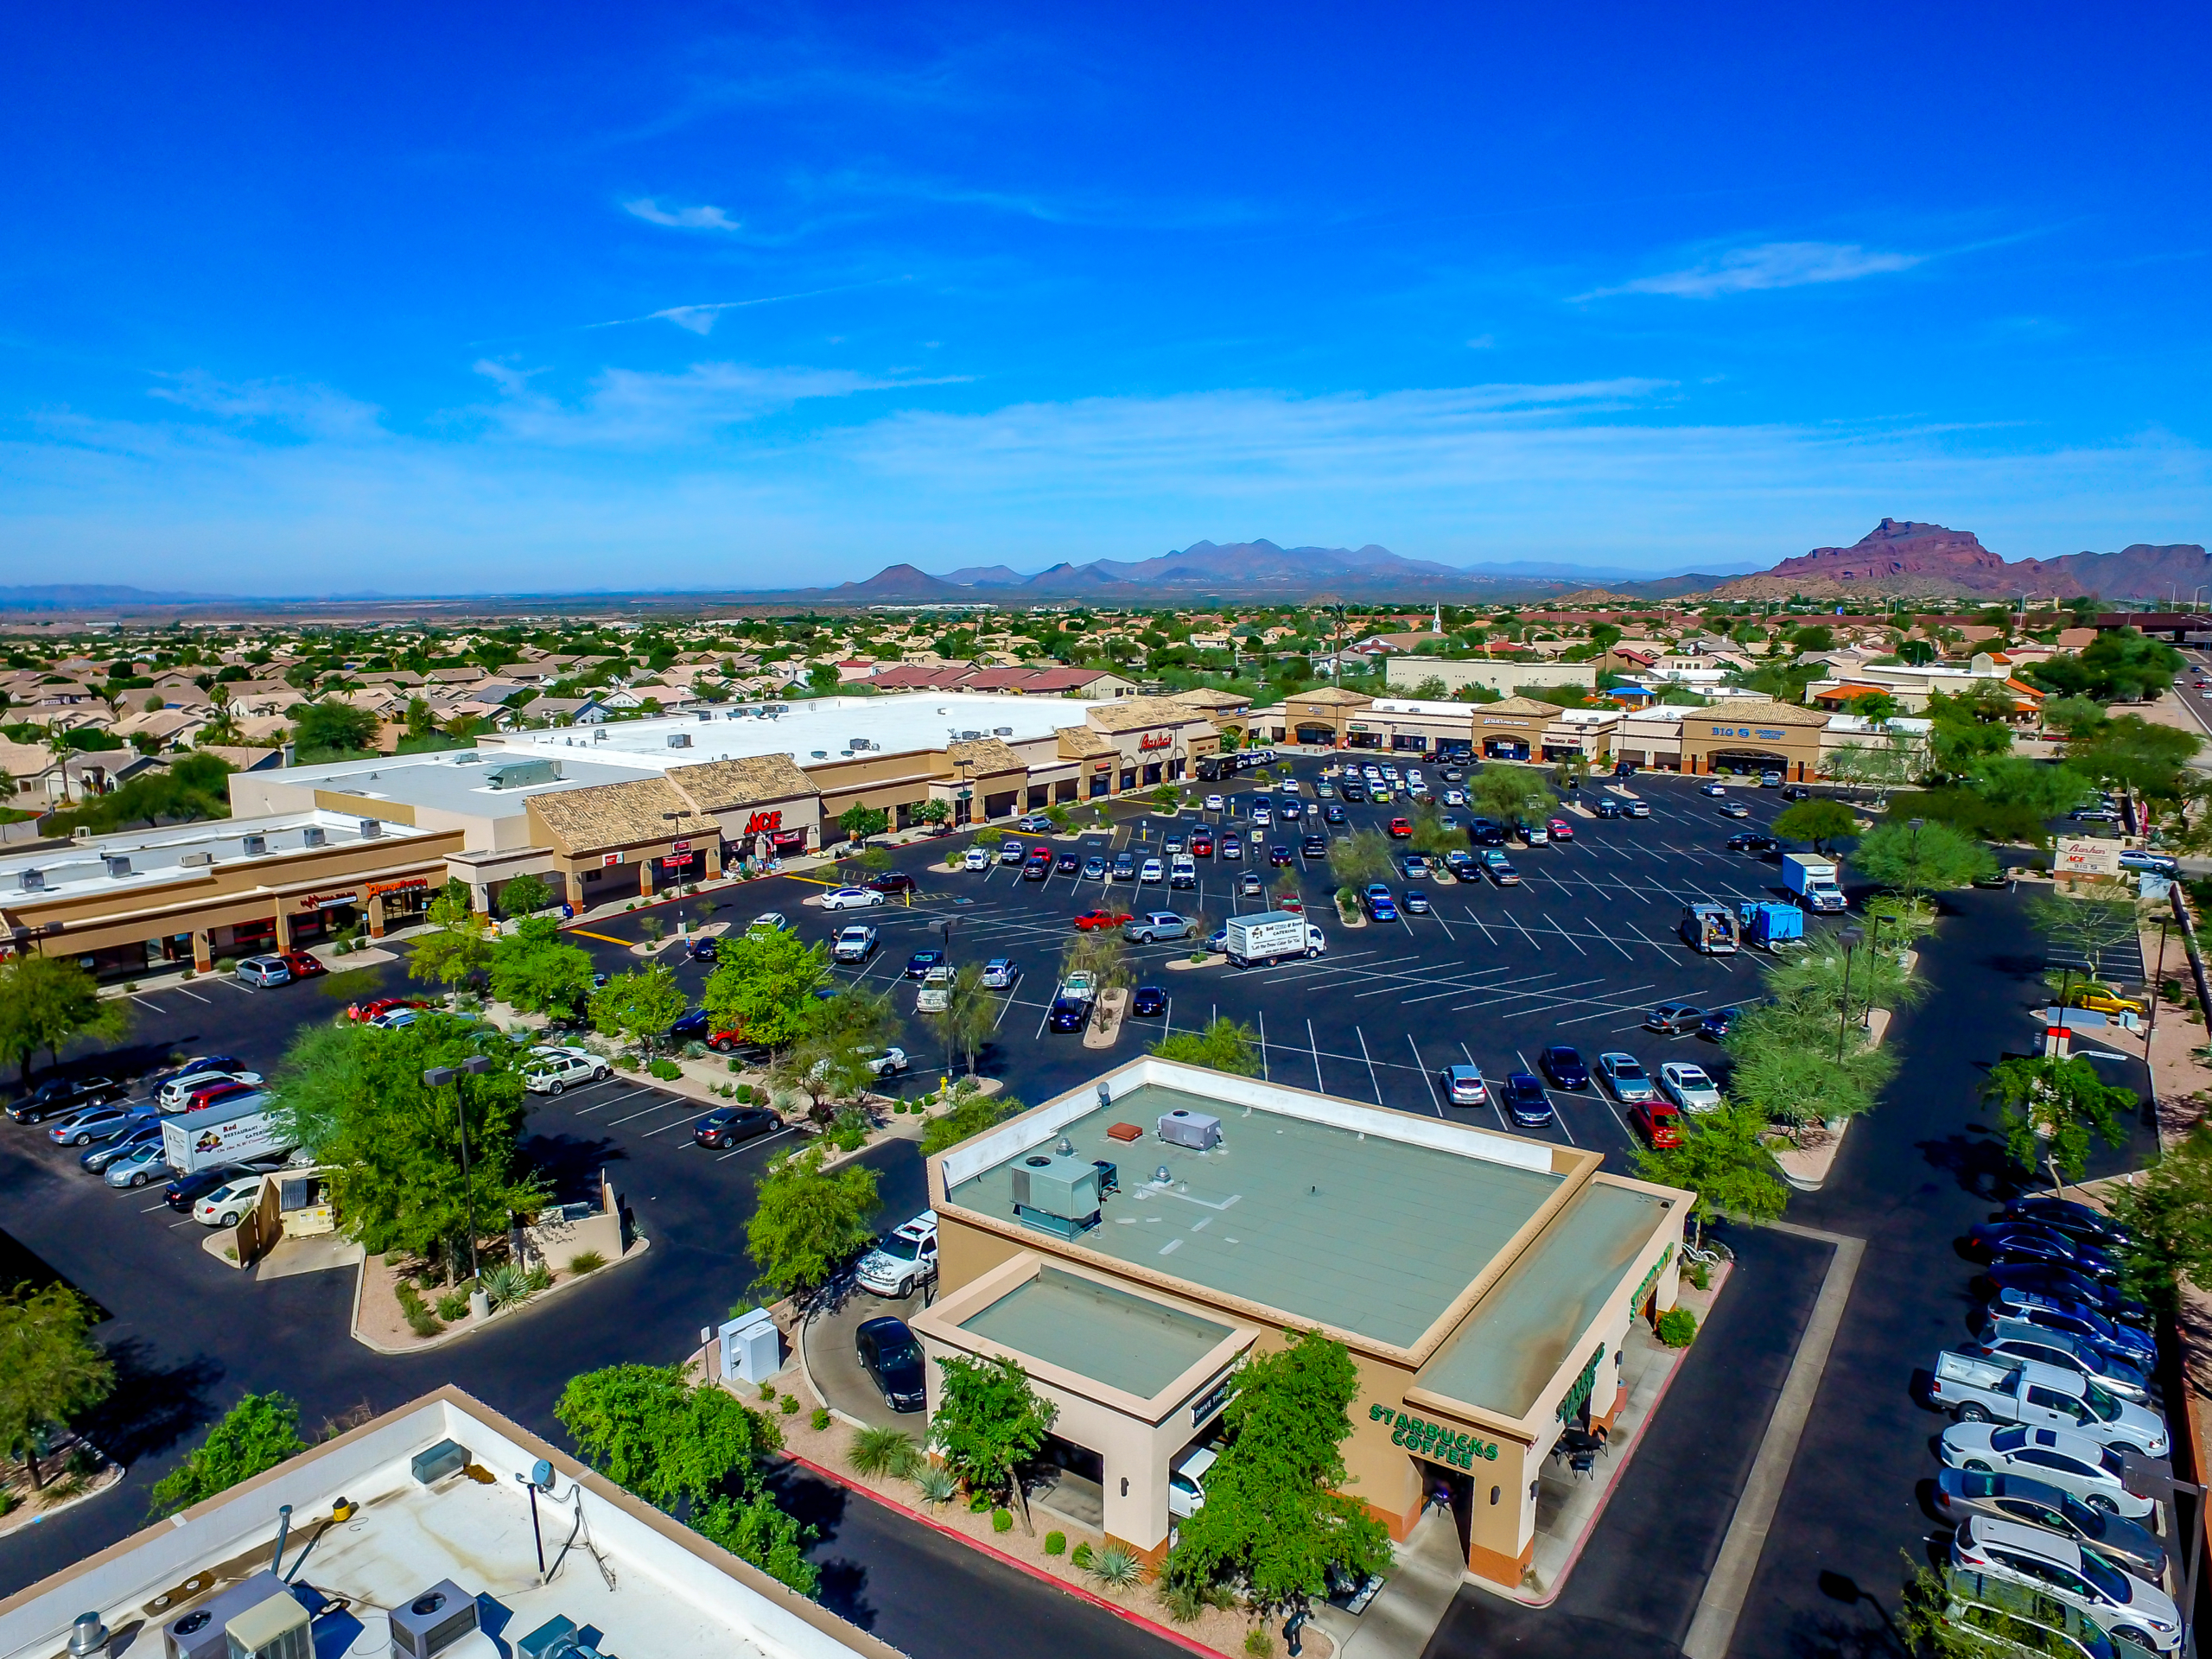 Ridgeview Shopping Center Aerial